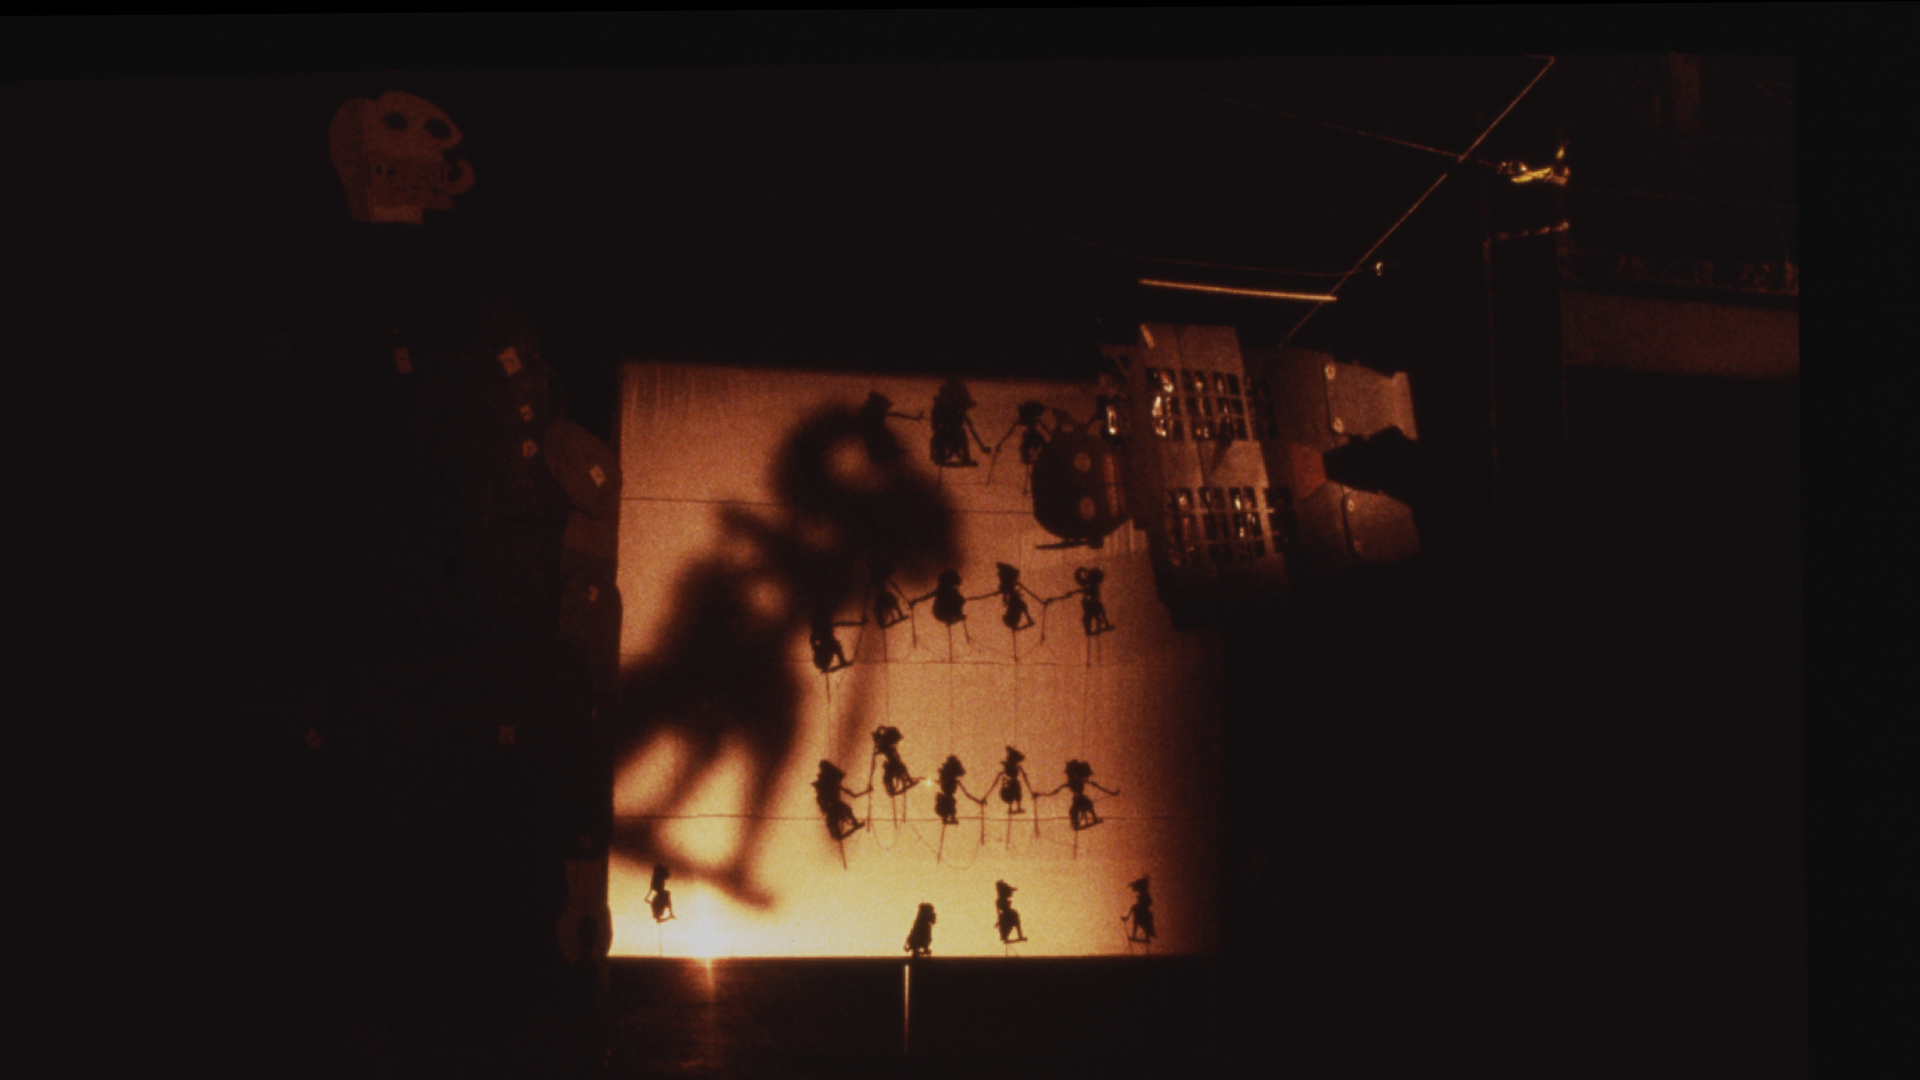 Large-scale transmisi puppets and shadow projections